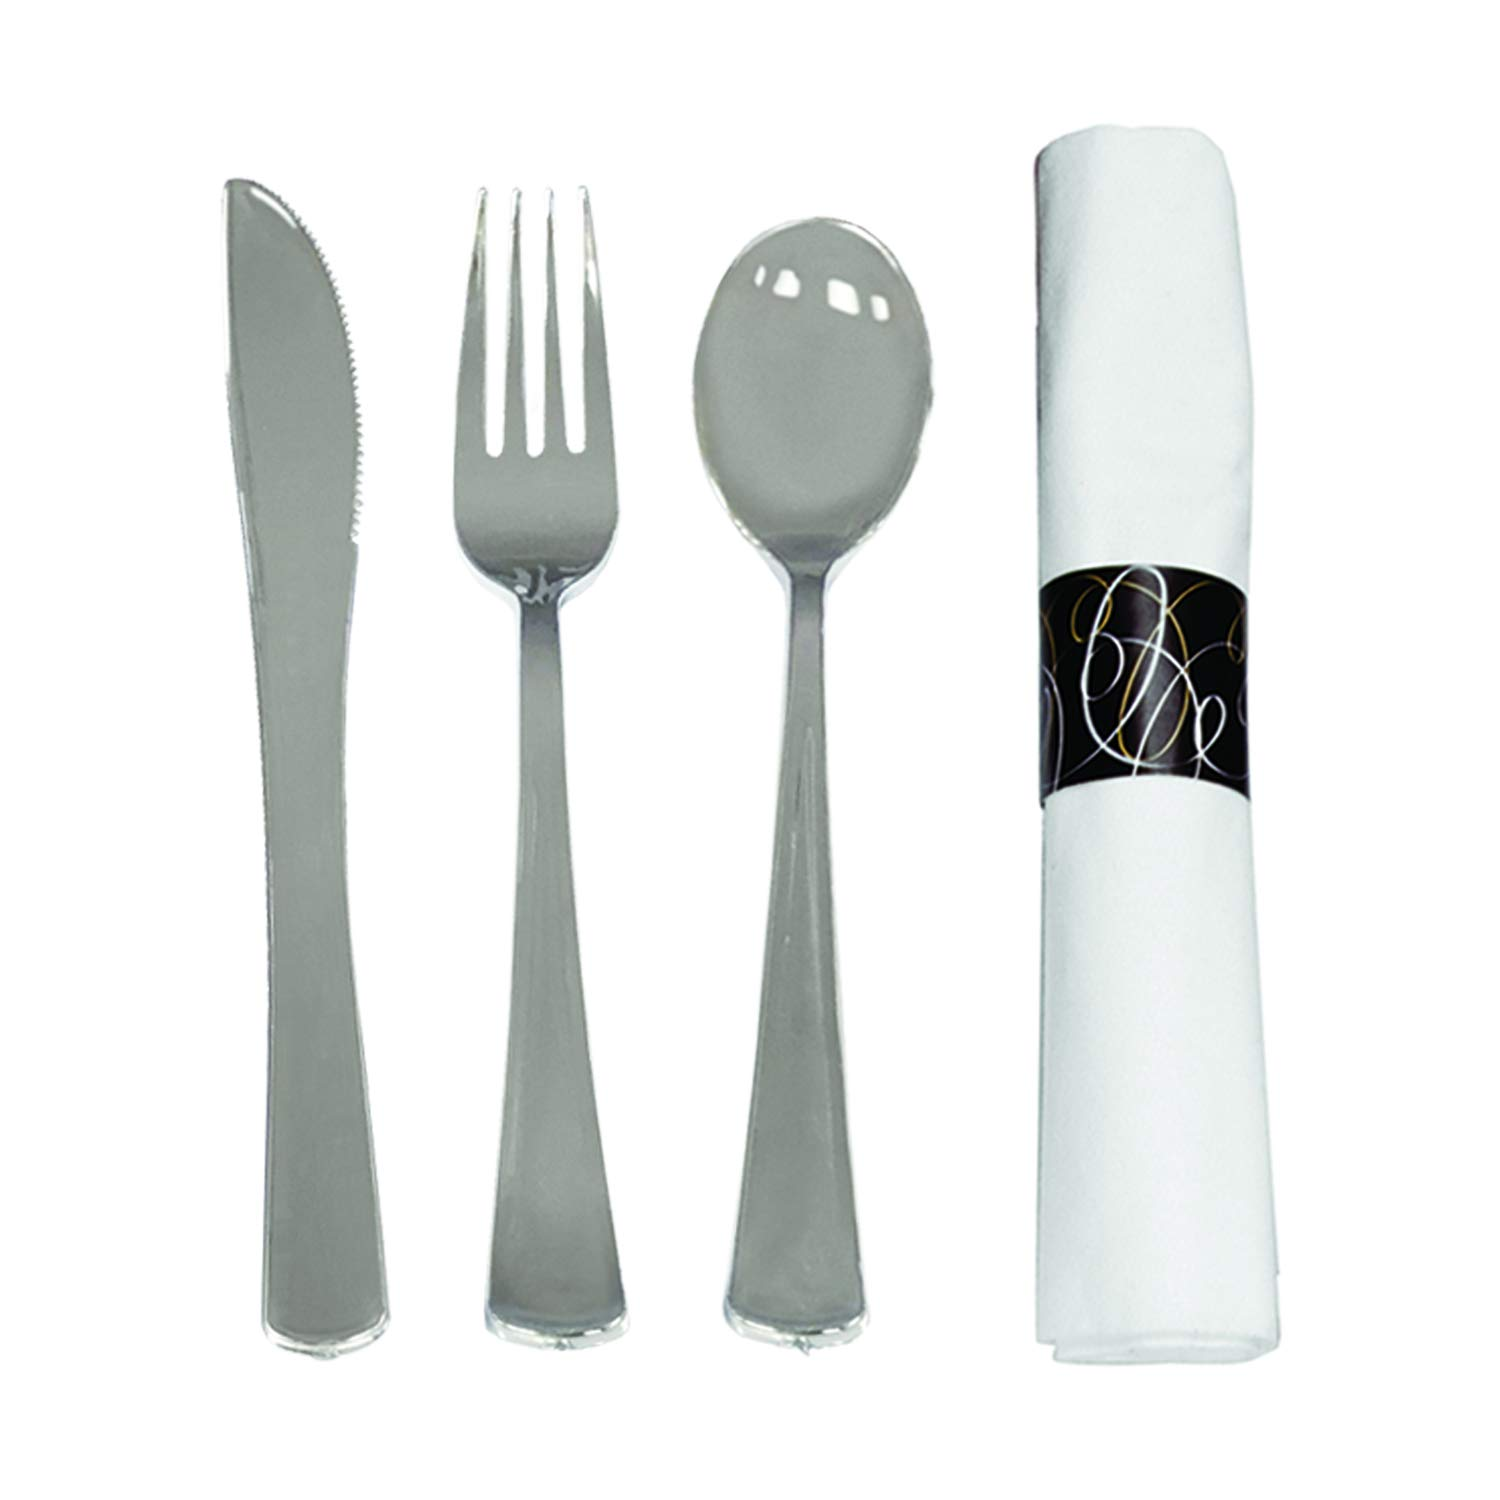 Party Essentials Pre-Rolled Disposable Extra Heavy Duty Plastic Cutlery Kit with Silver Fork/Knife/Spoon and 3-Ply White Napkin (Case of 300 Rolls)